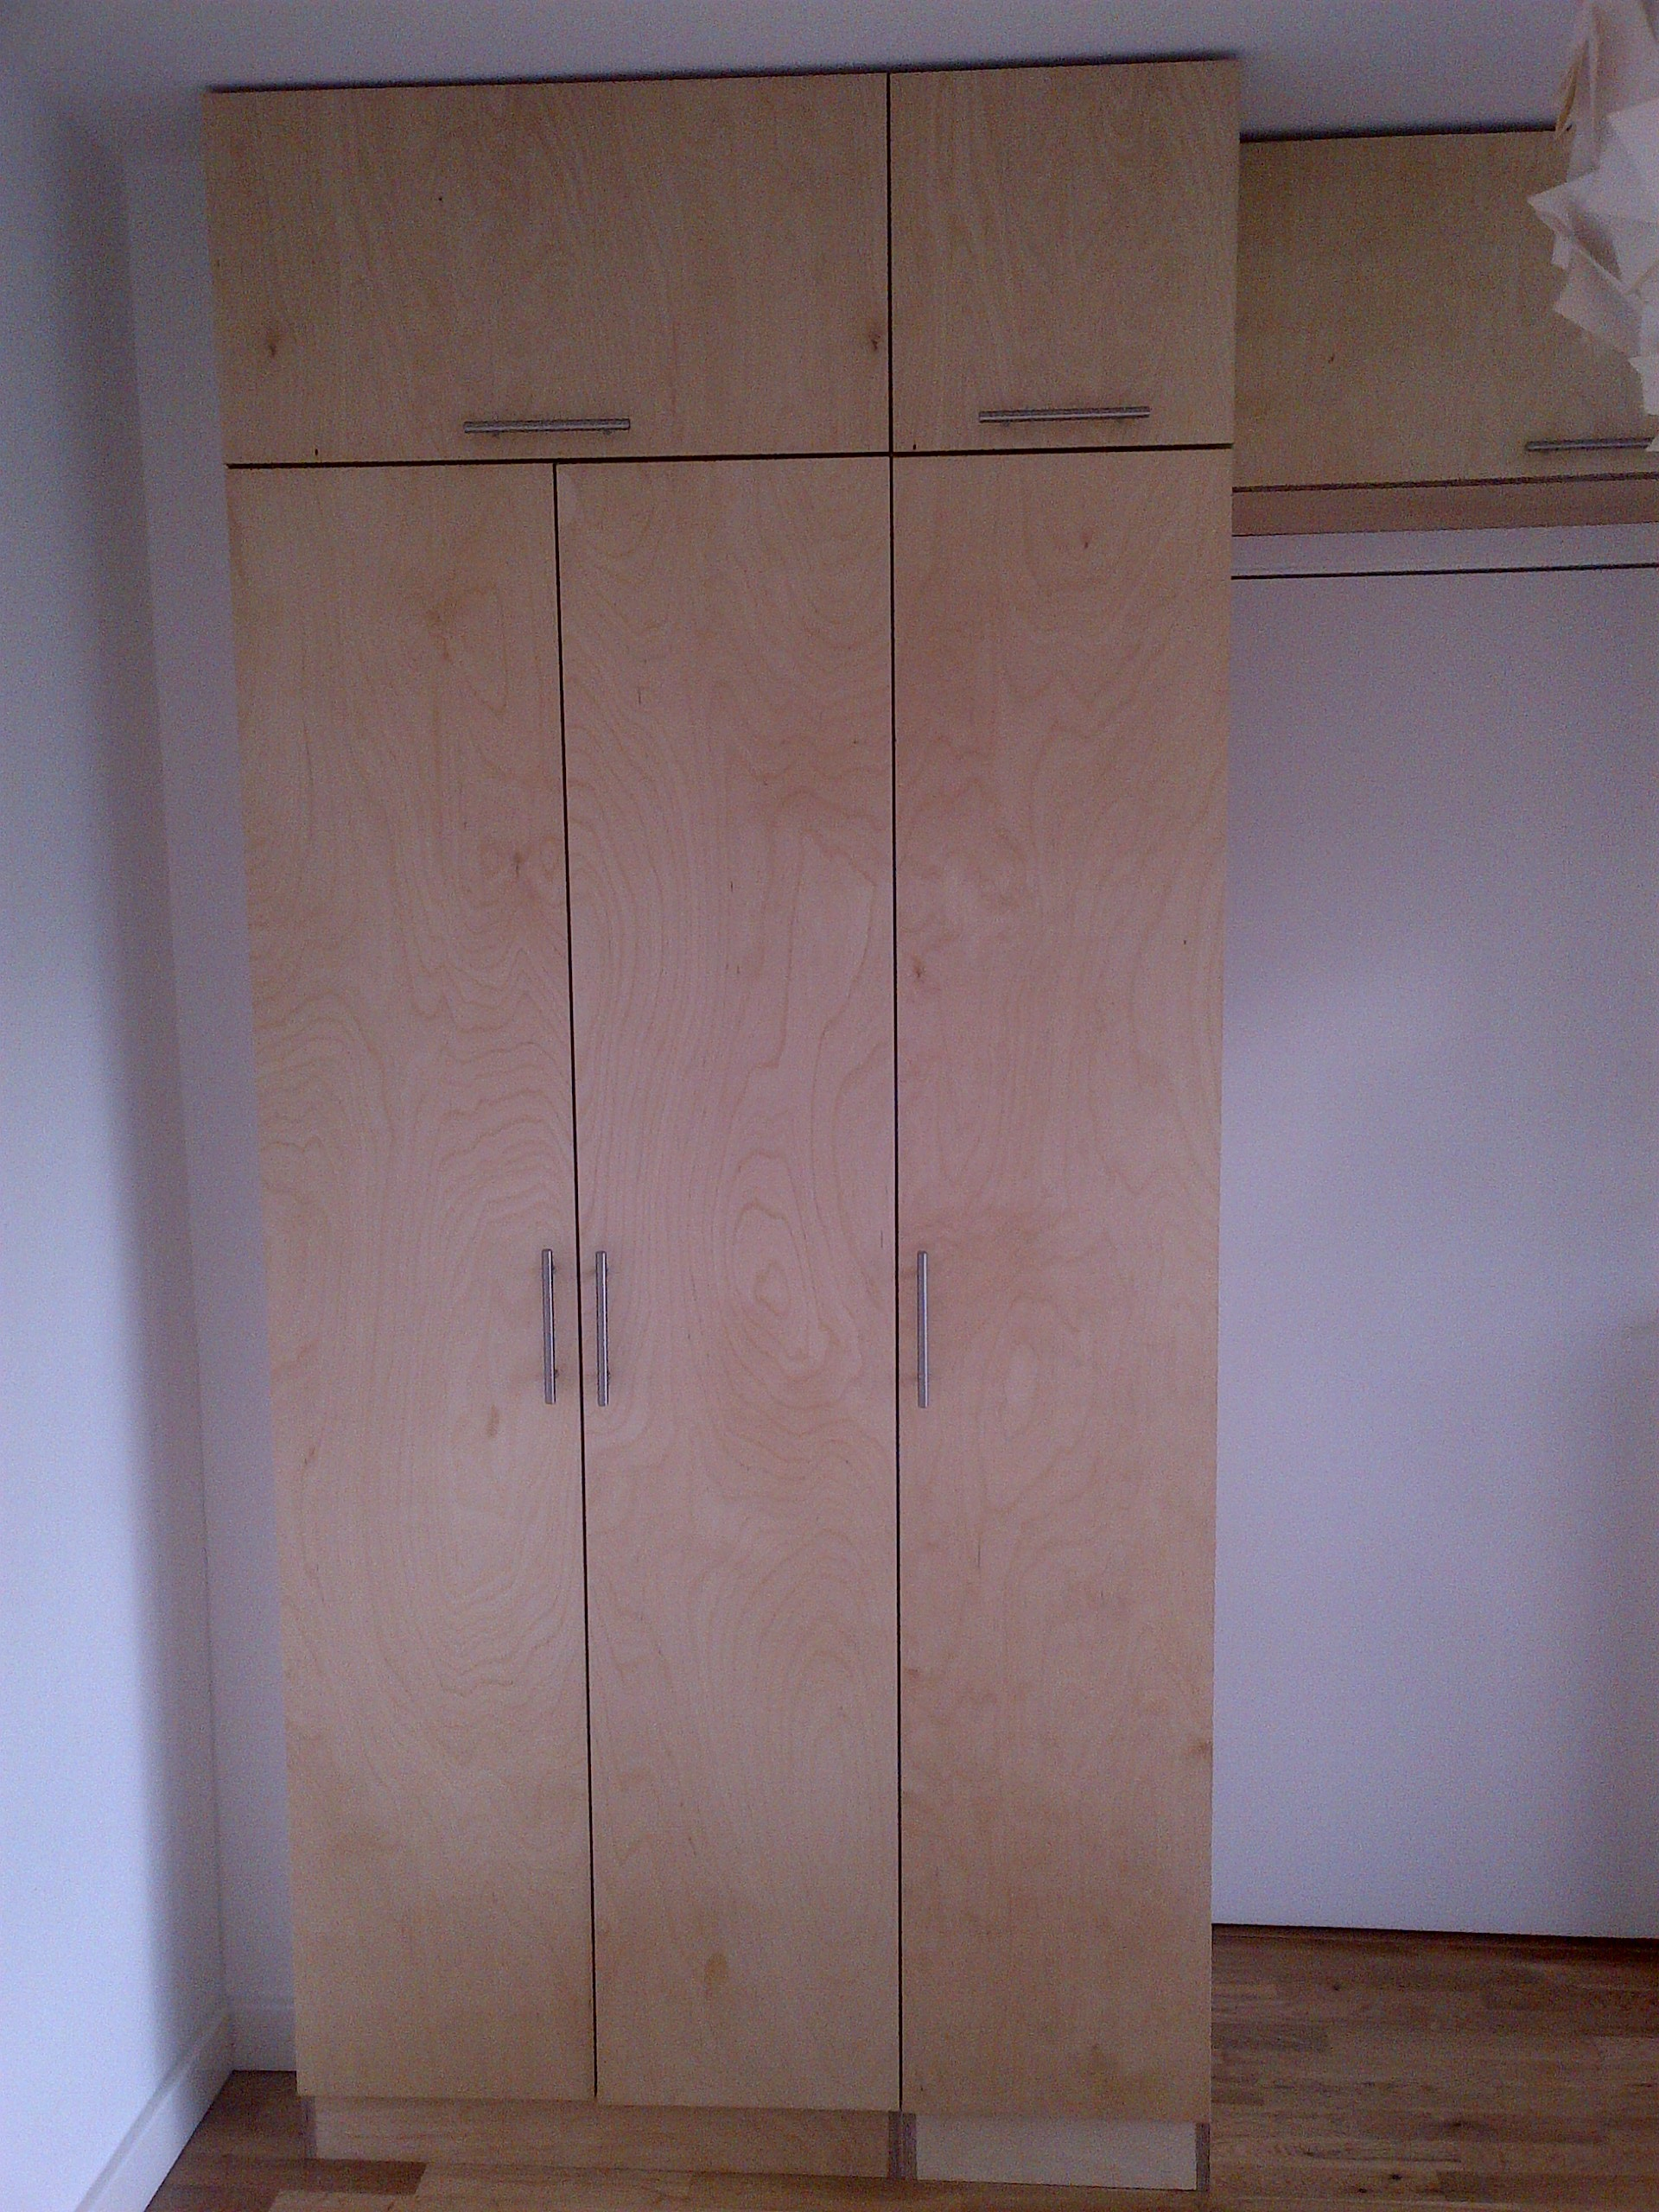 Birch Ply Cabinetry For Living Room Diy Wardrobes